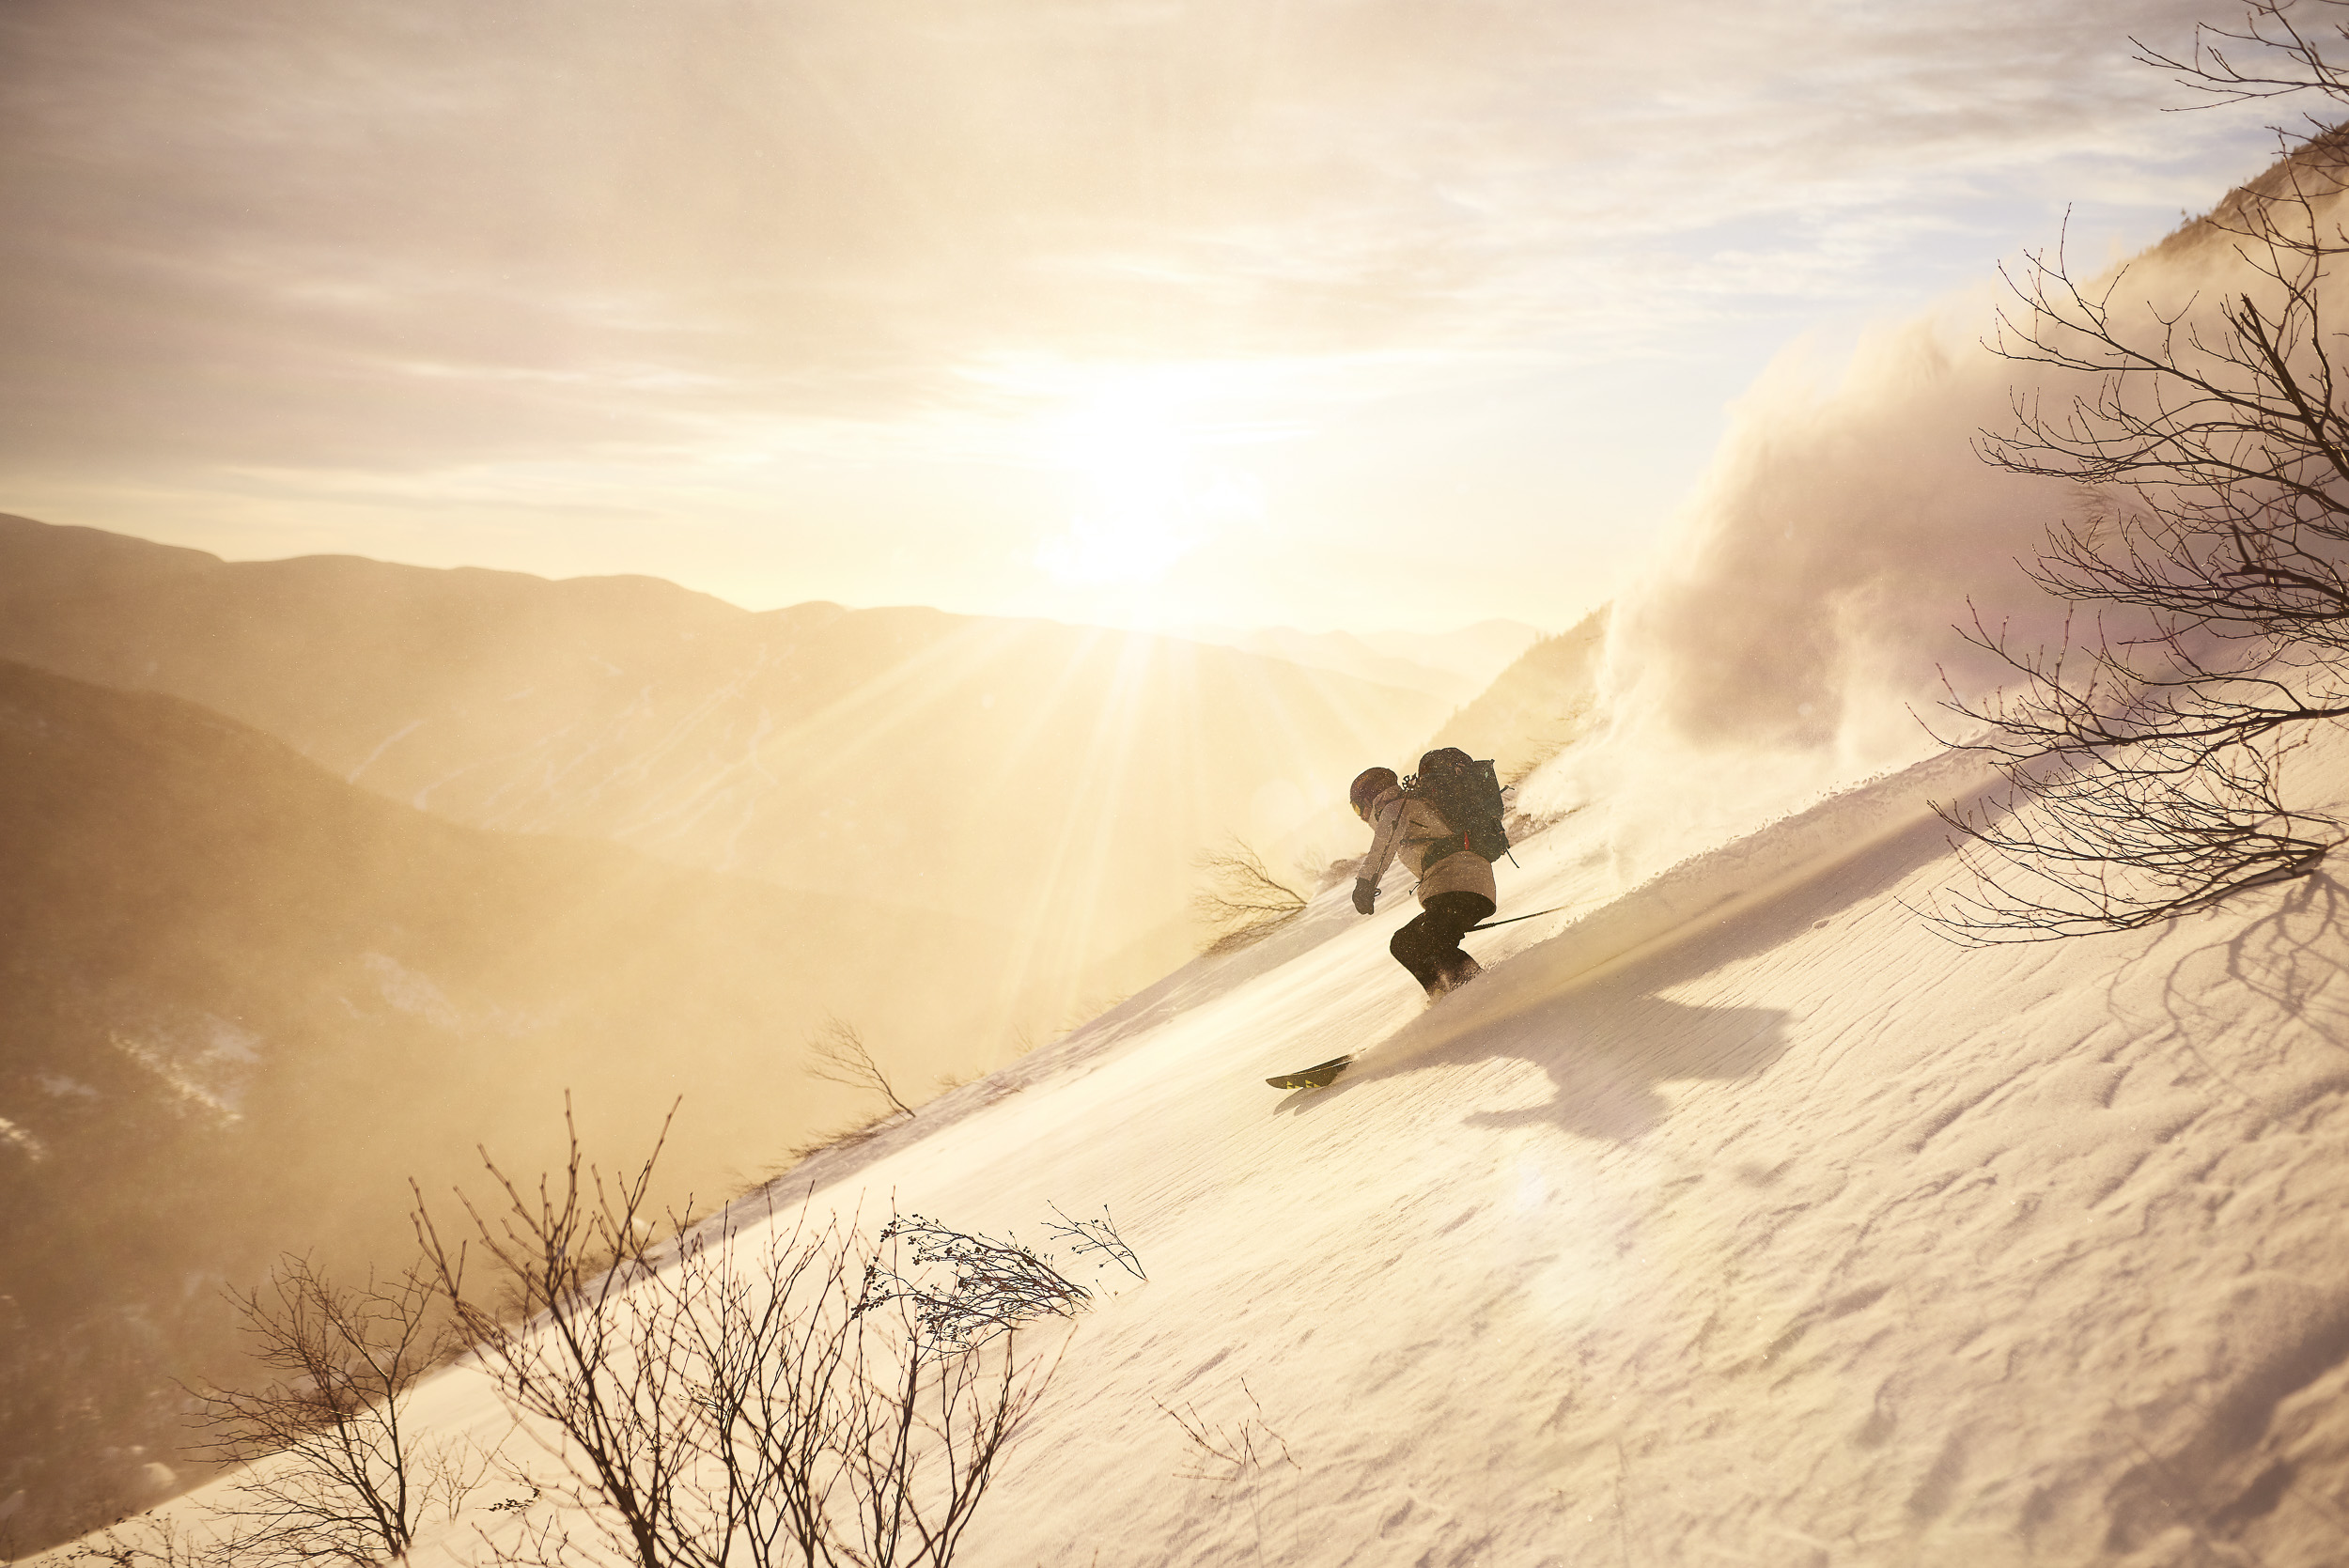 New-Hampshire-Mount-Washington-Skiing-2646